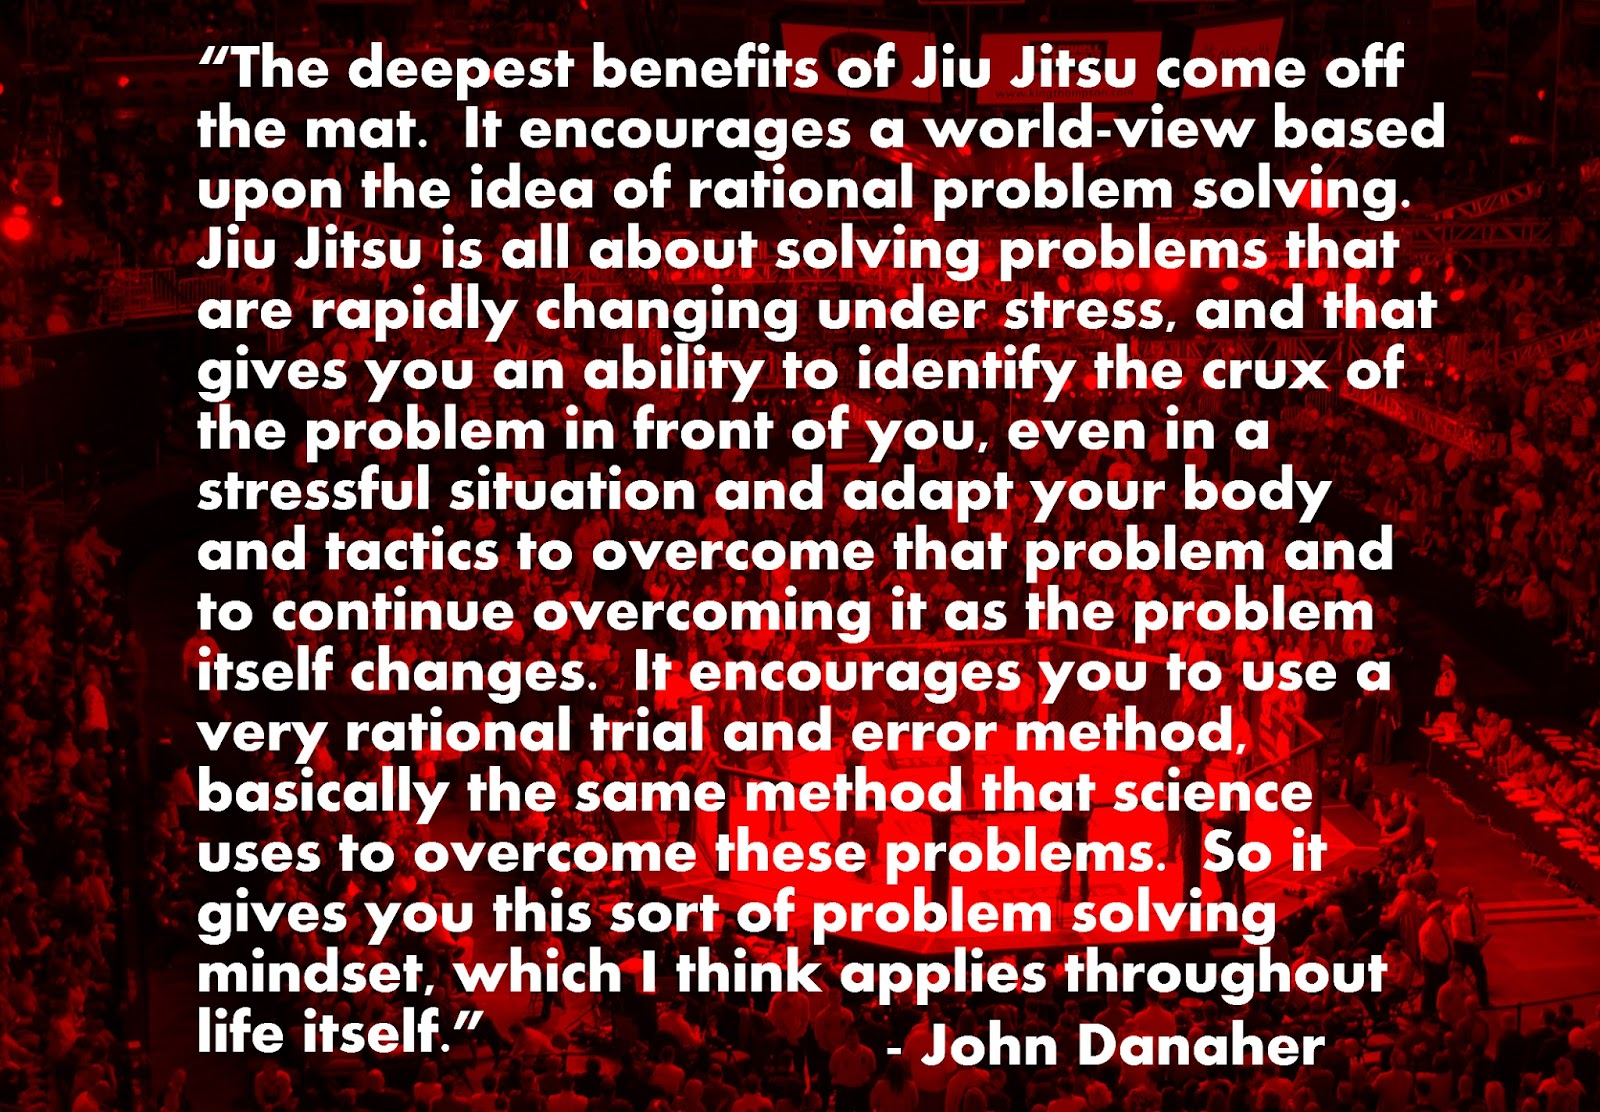 Jiu Jitsu Quotes Motivational Quotes With Pictures Many Mma & Ufc John Danaher